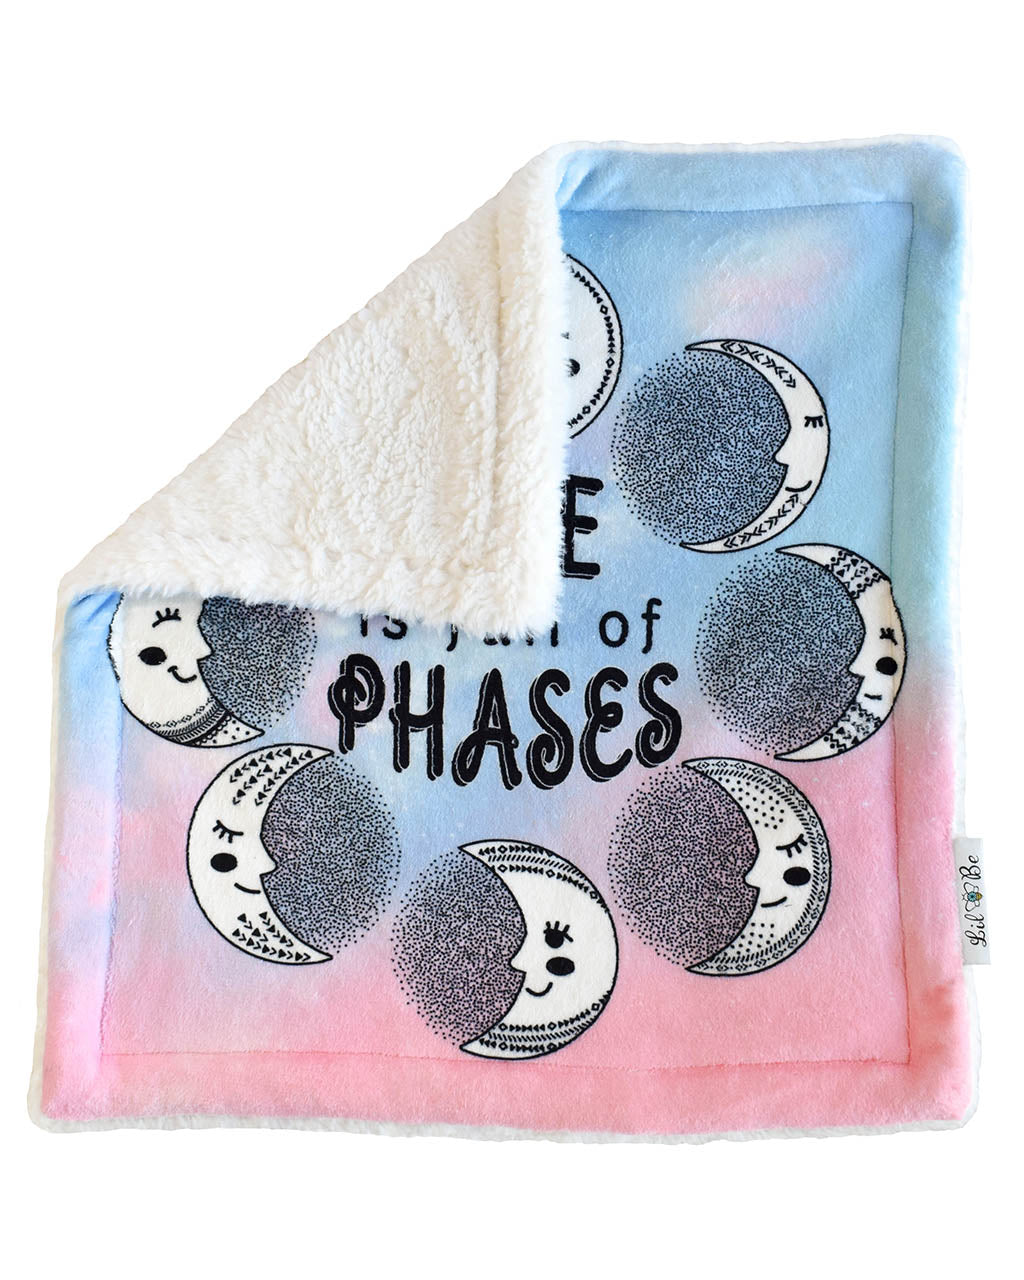 Moon Phases Plush Security Blanket Back View of Sherpa